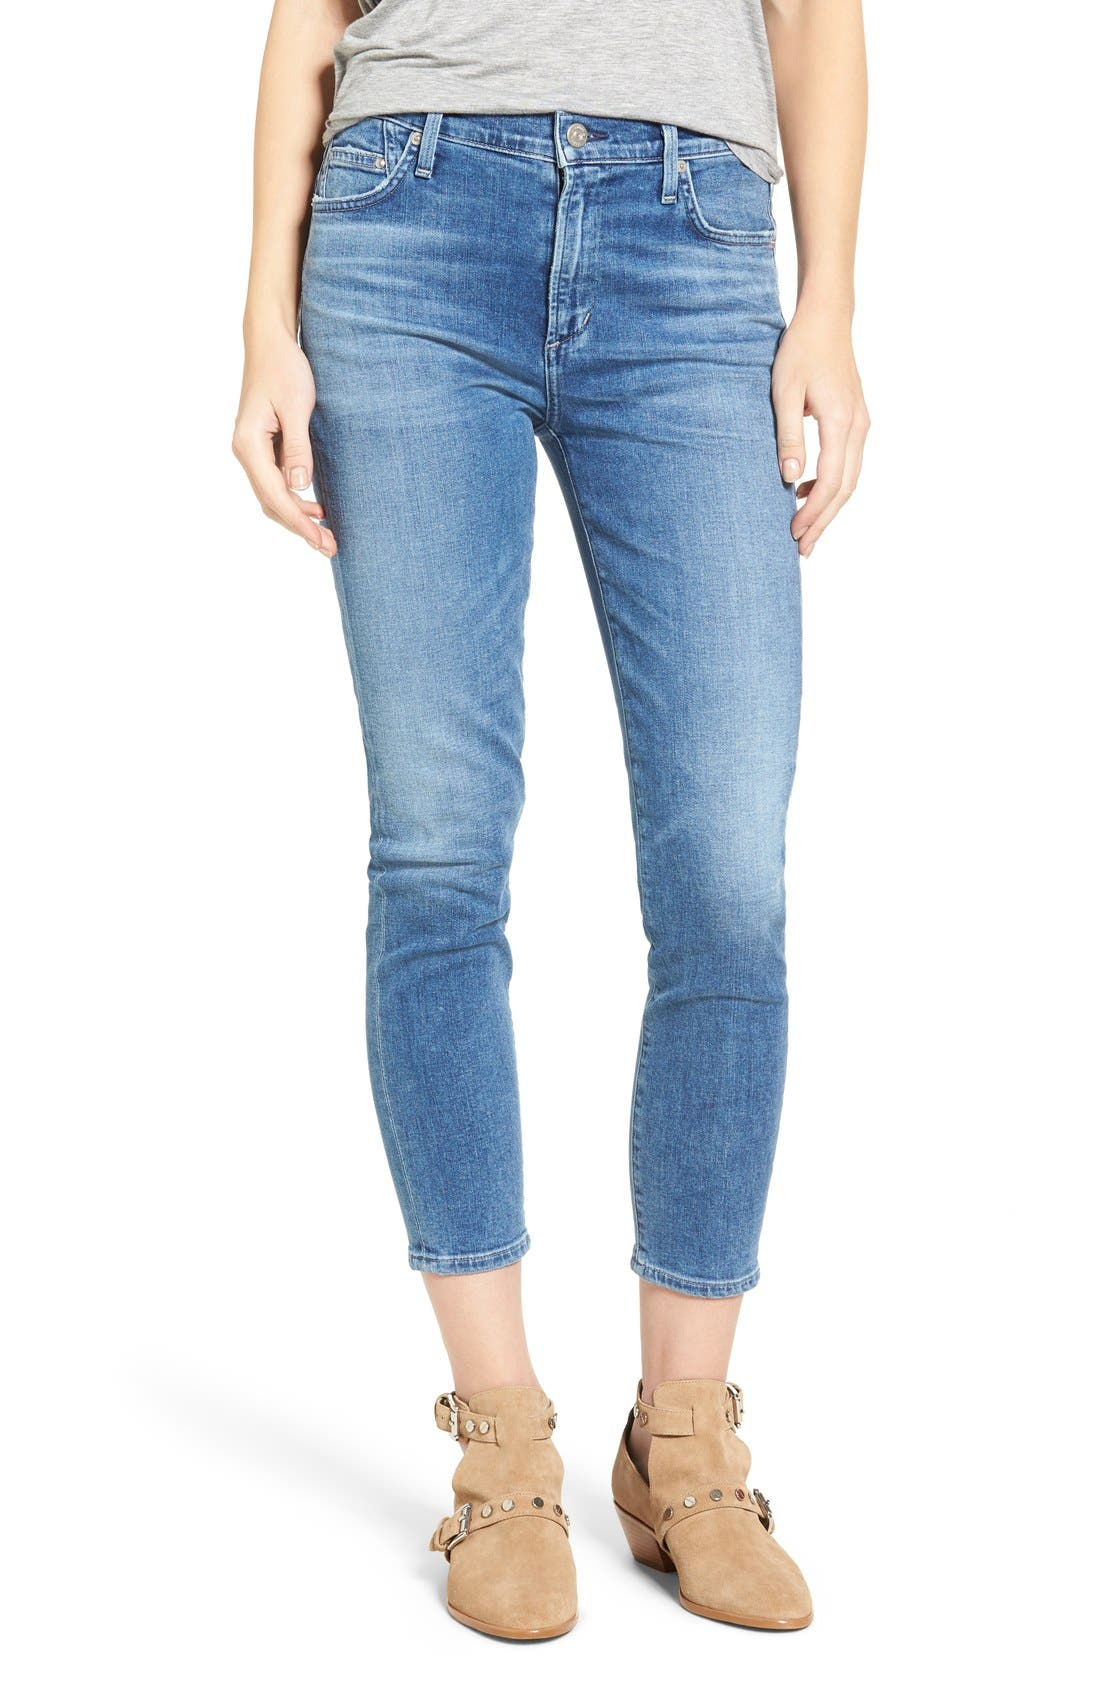 Alternate Image 1 Selected - Citizens of Humanity Rocket High Waist Crop Skinny Jeans (Pacifica)